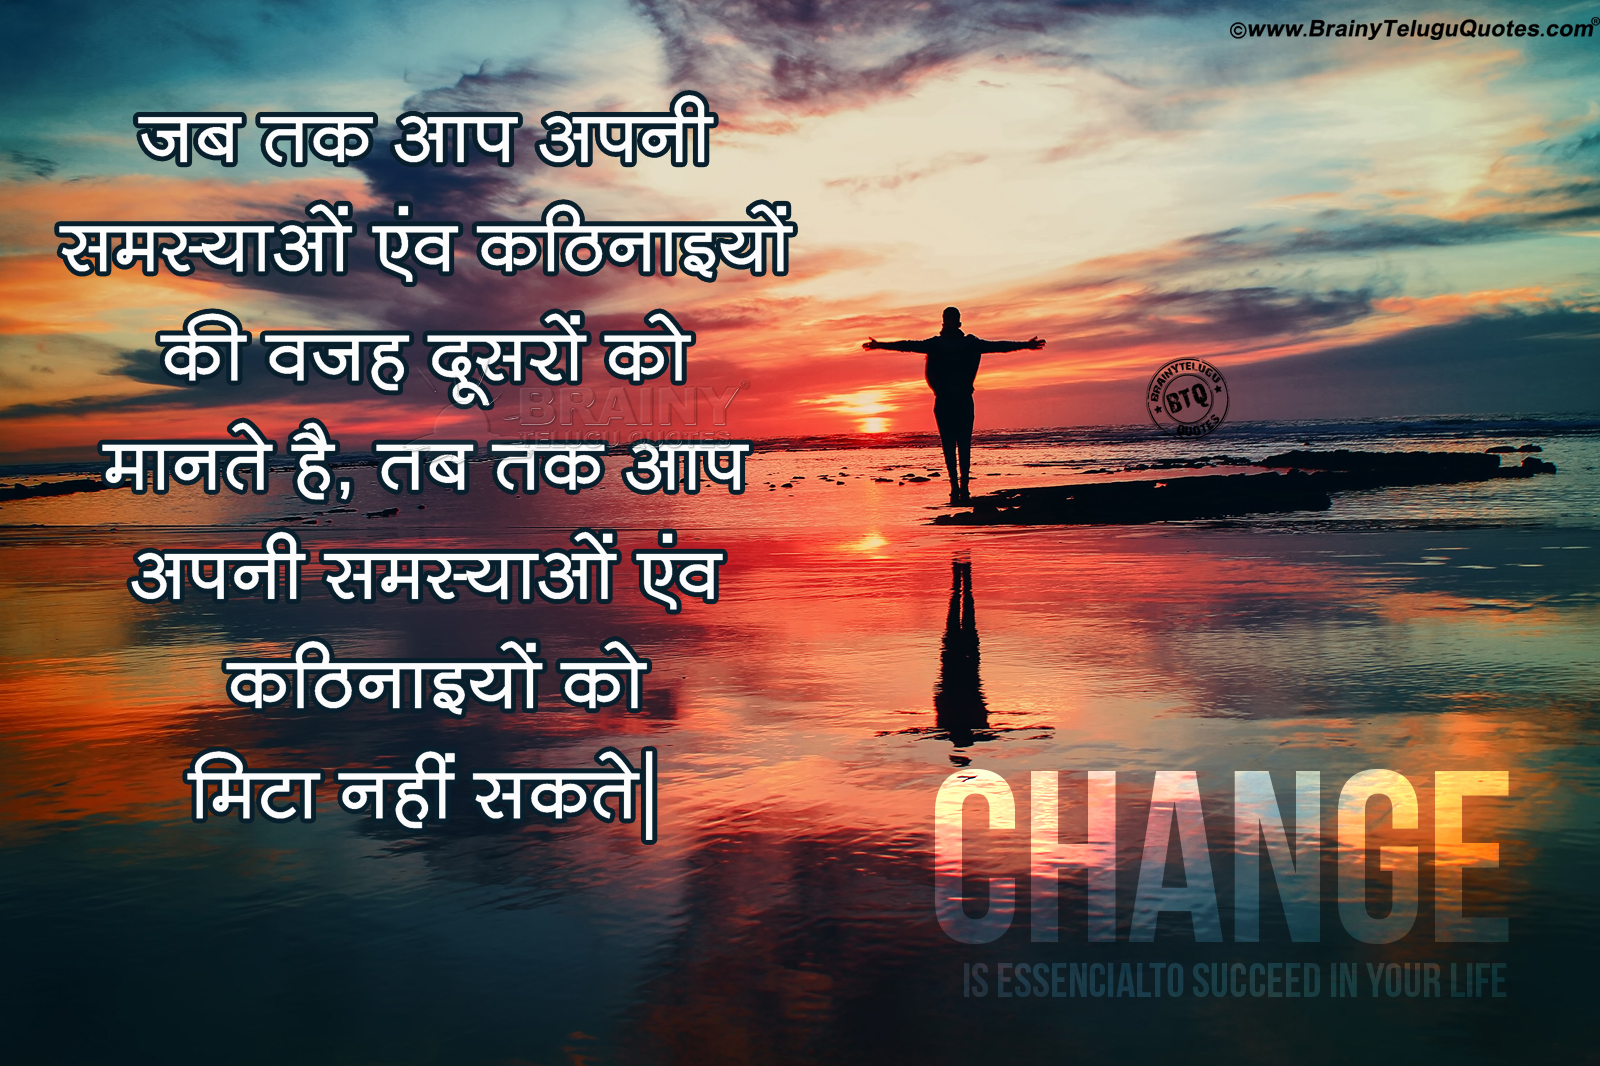 hindi best life changing goal messages-nice inspirational